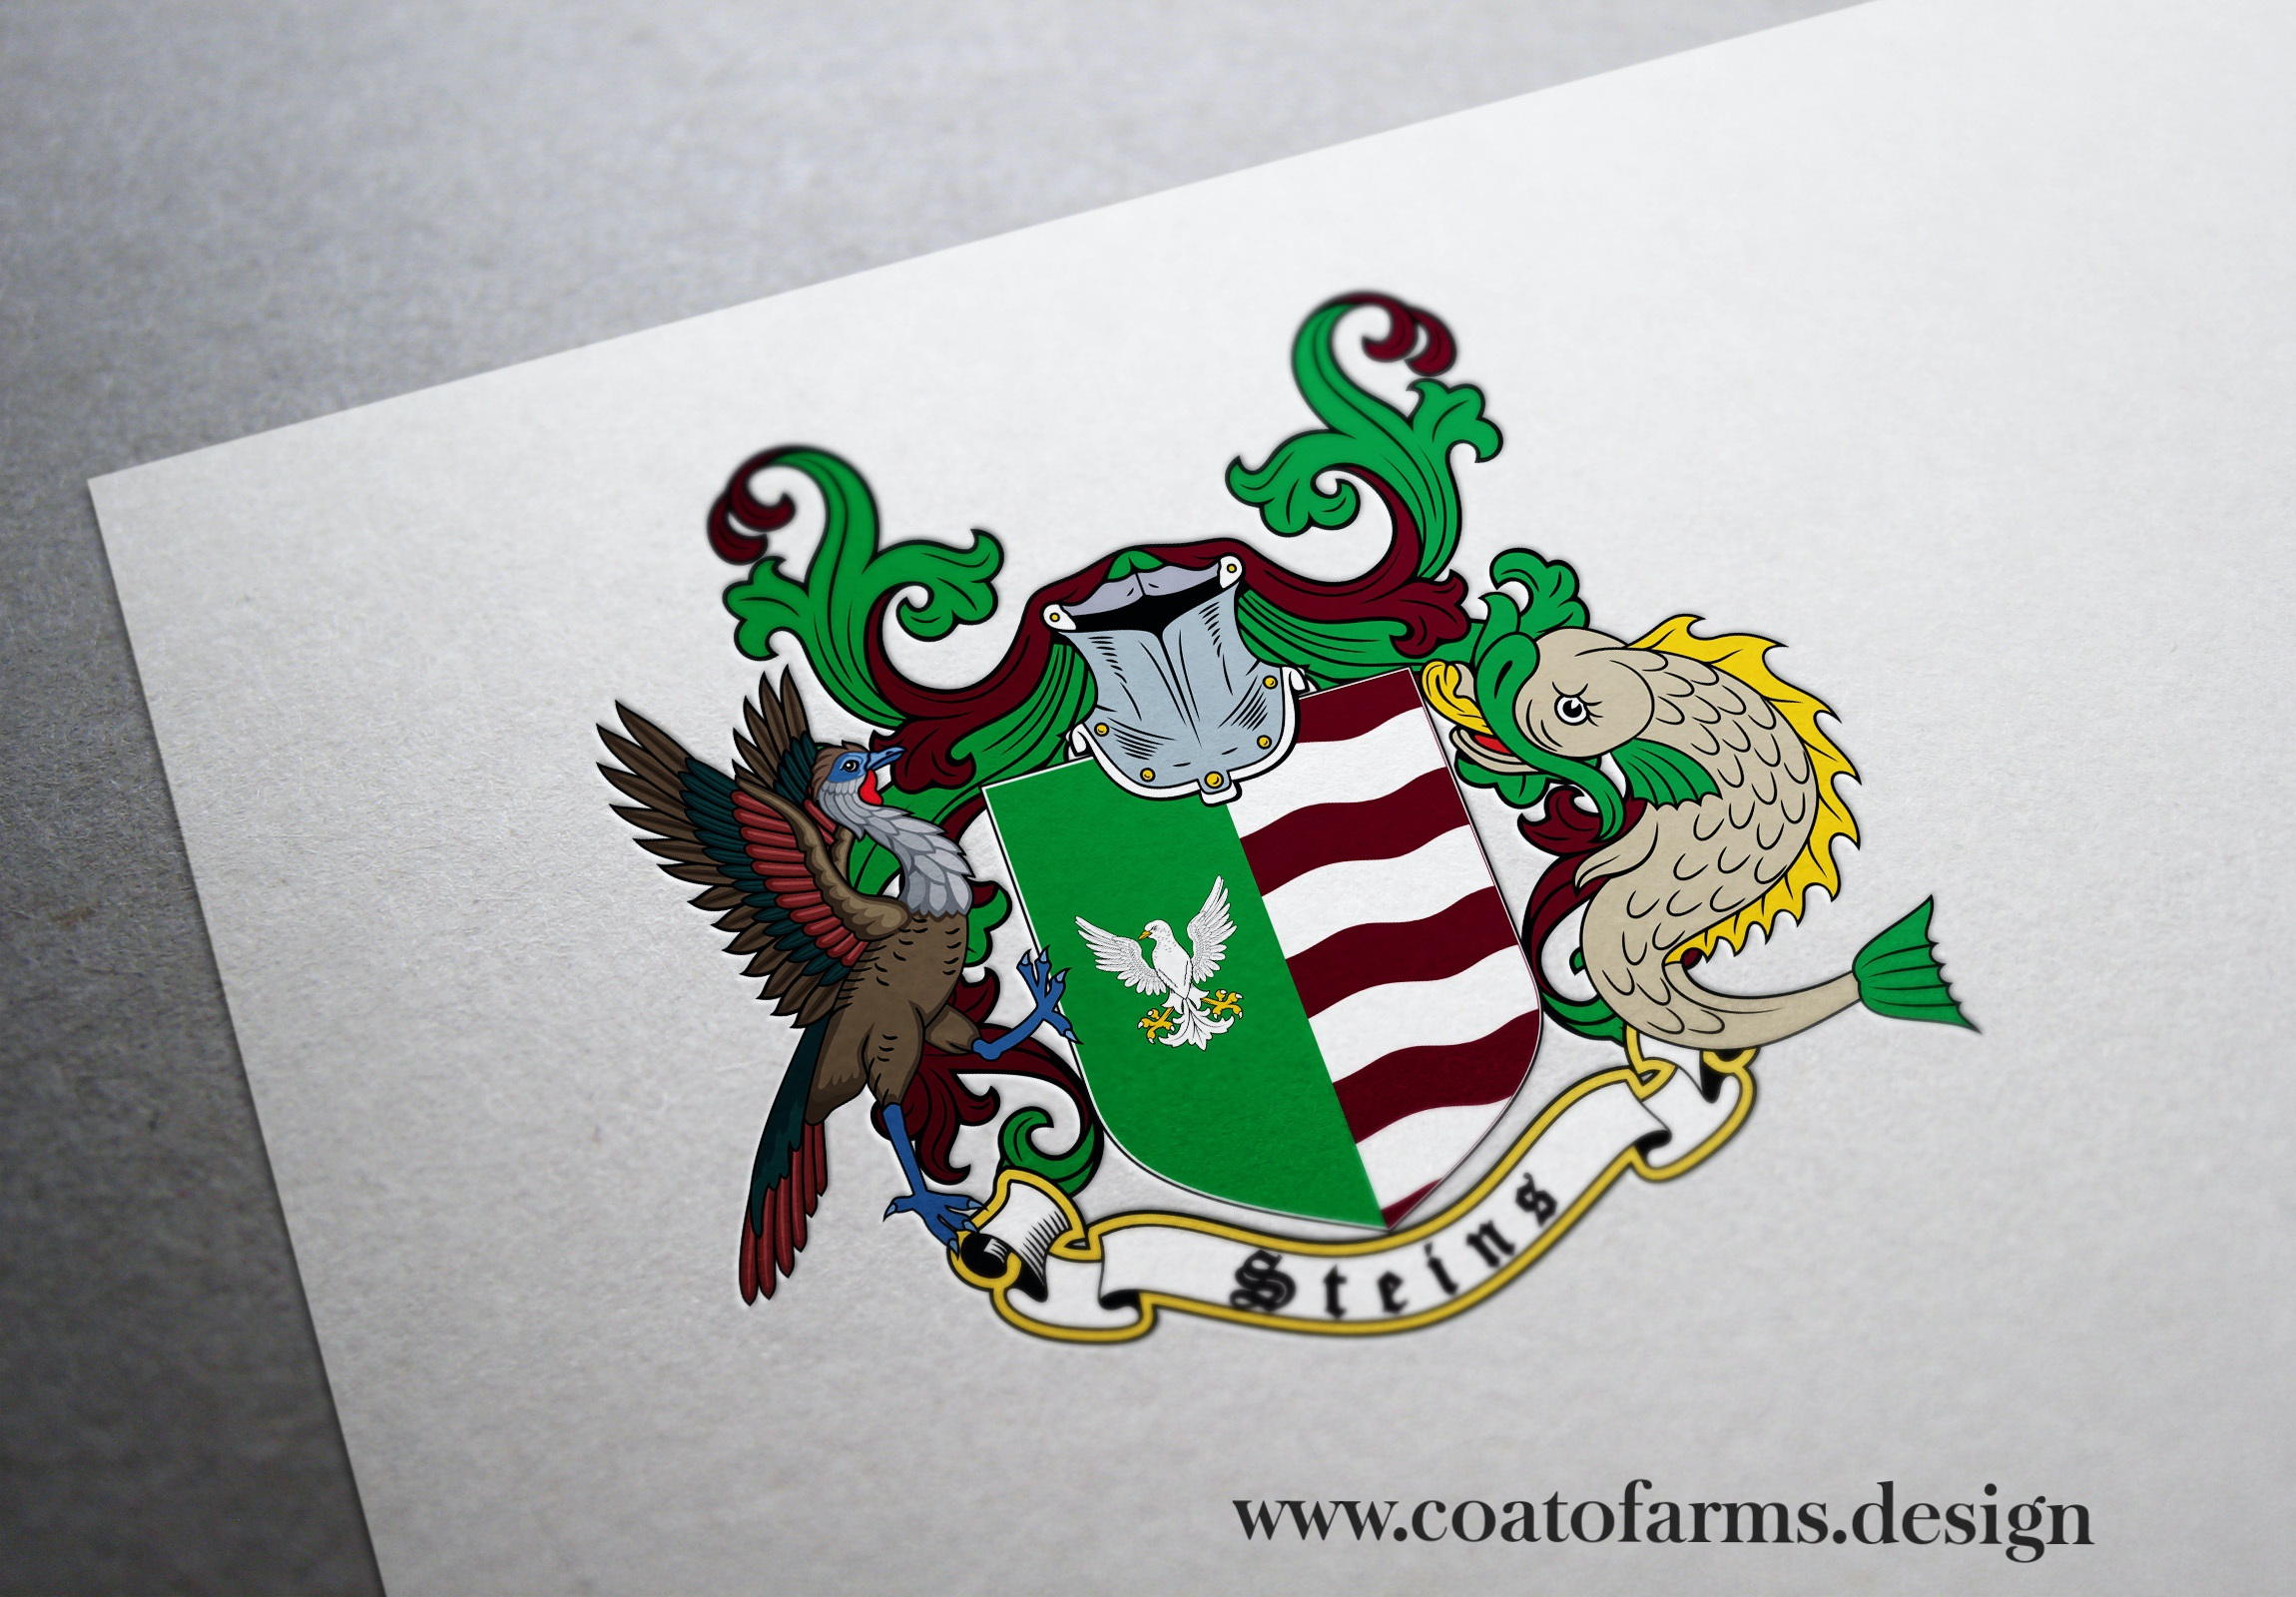 steins coat of arms